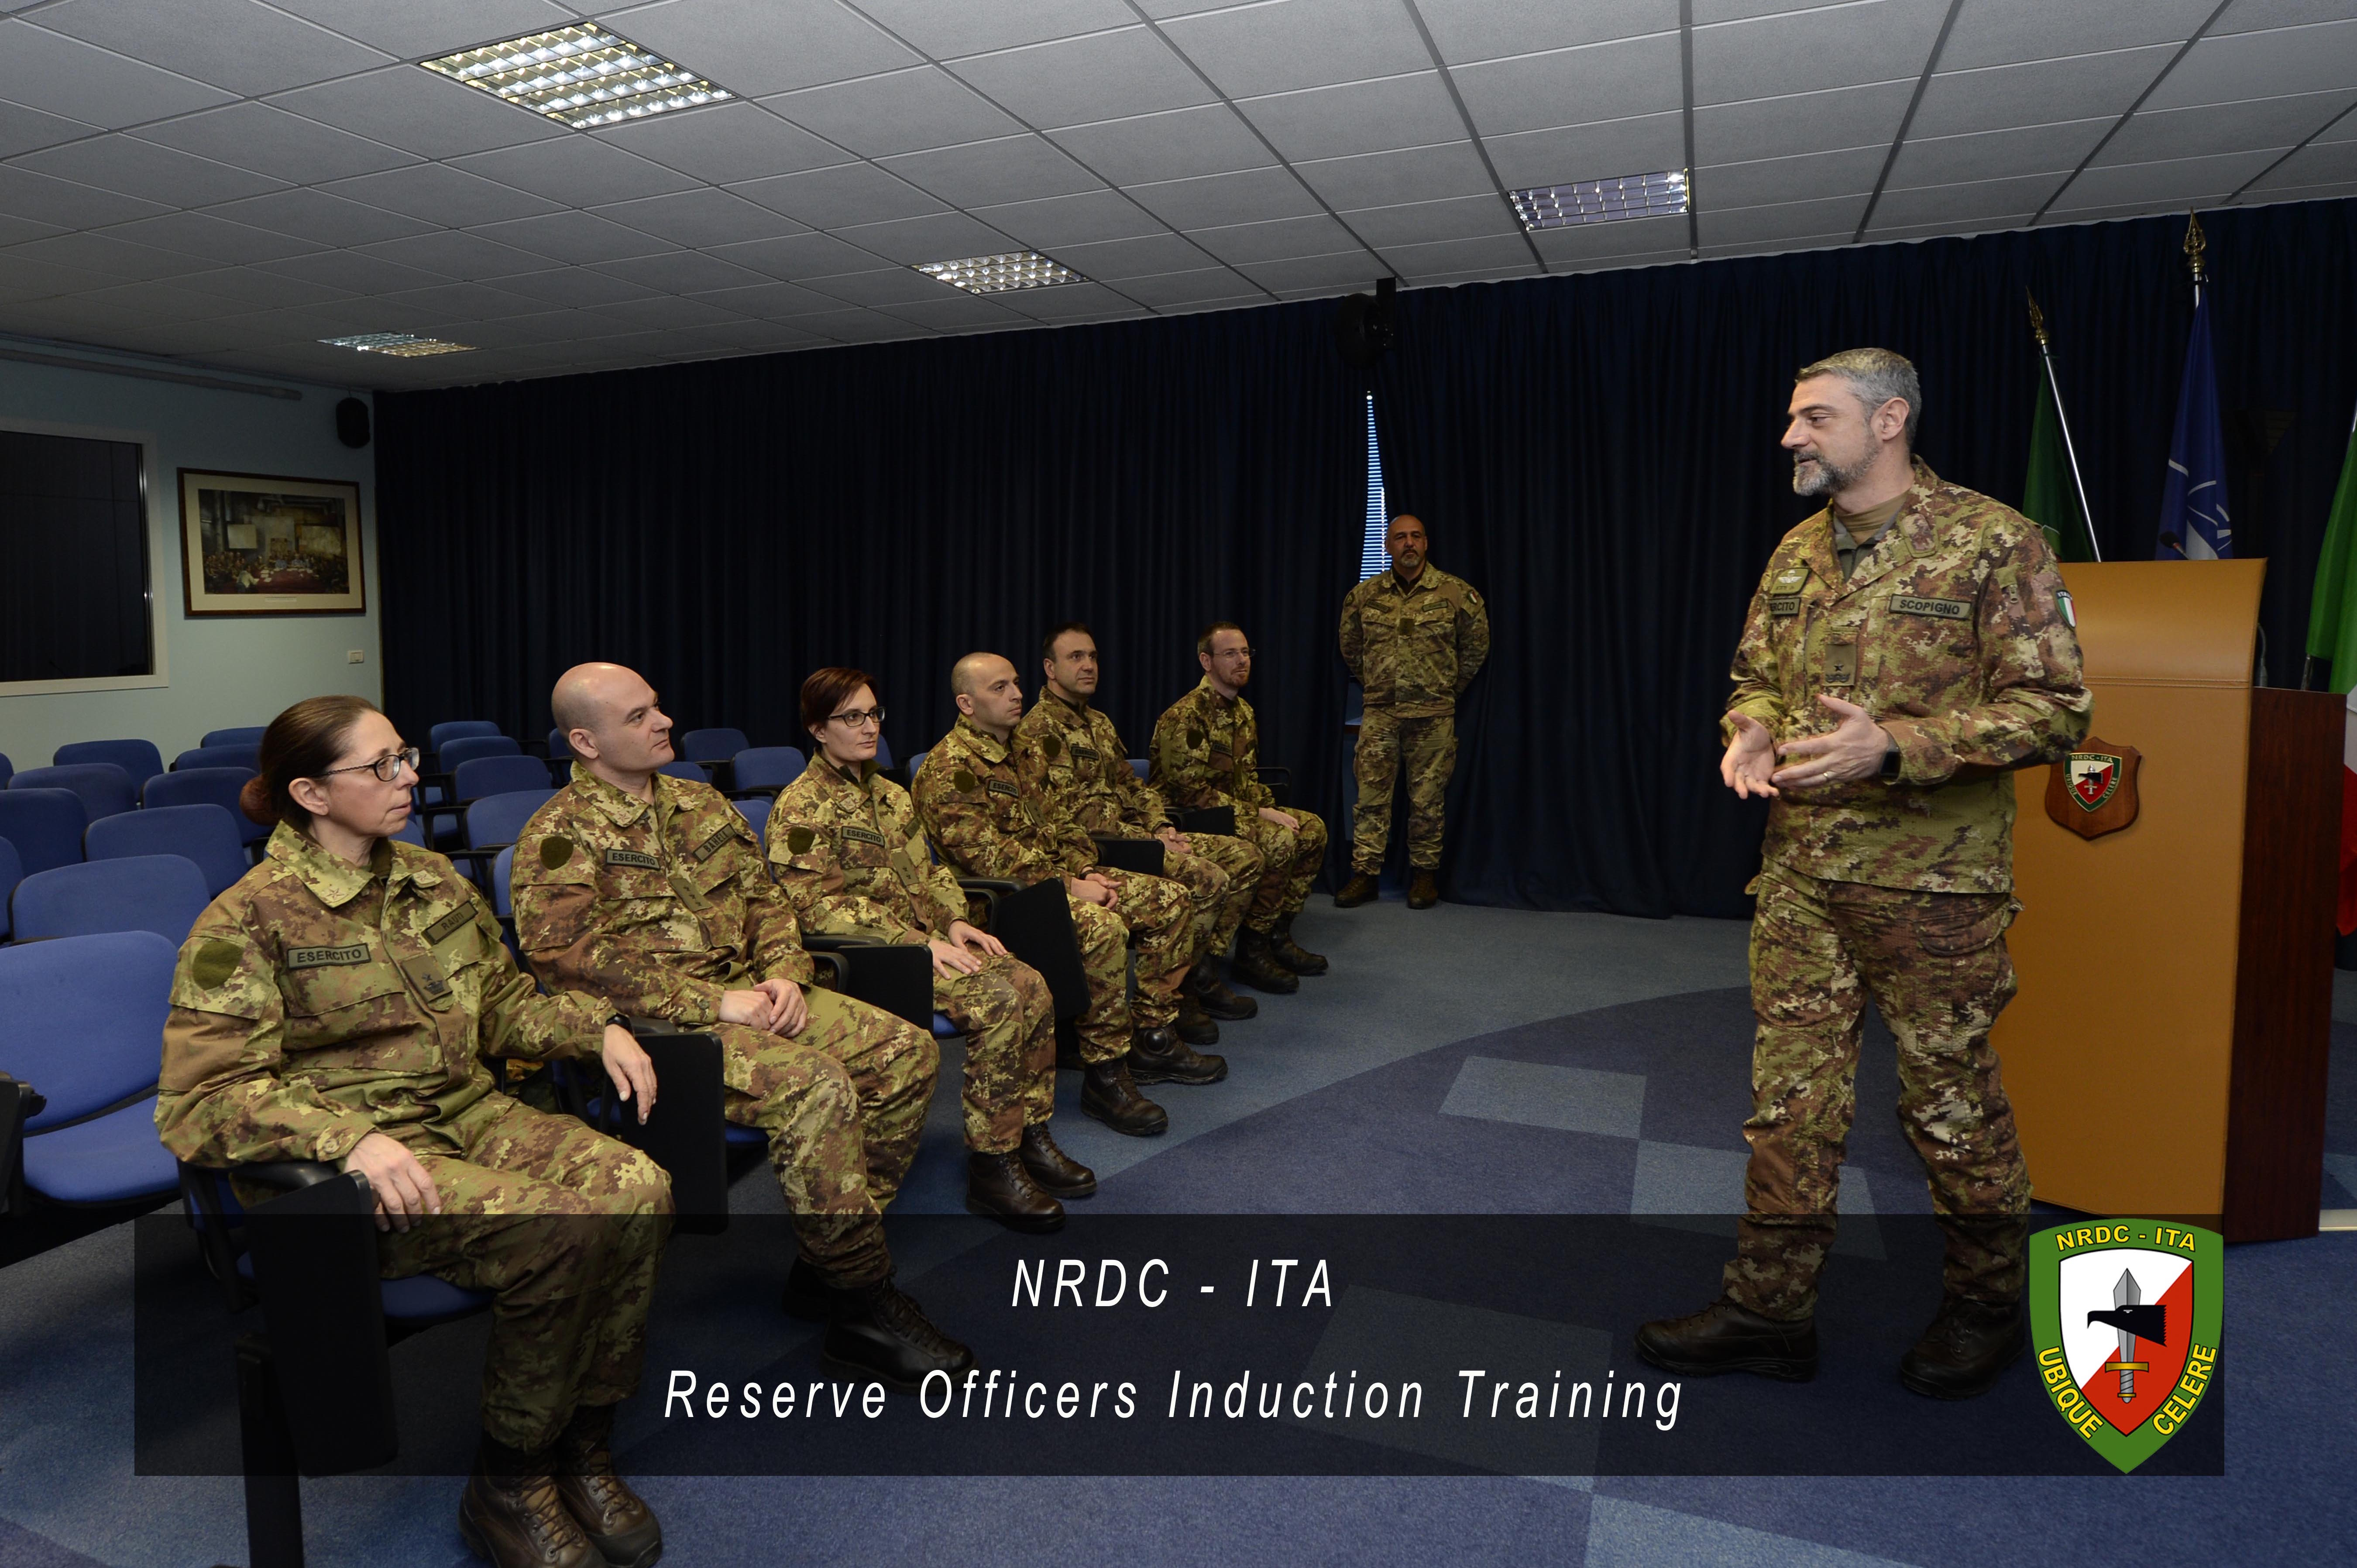 5th February - Closing day for the Italian Reserve Officers Induction Training